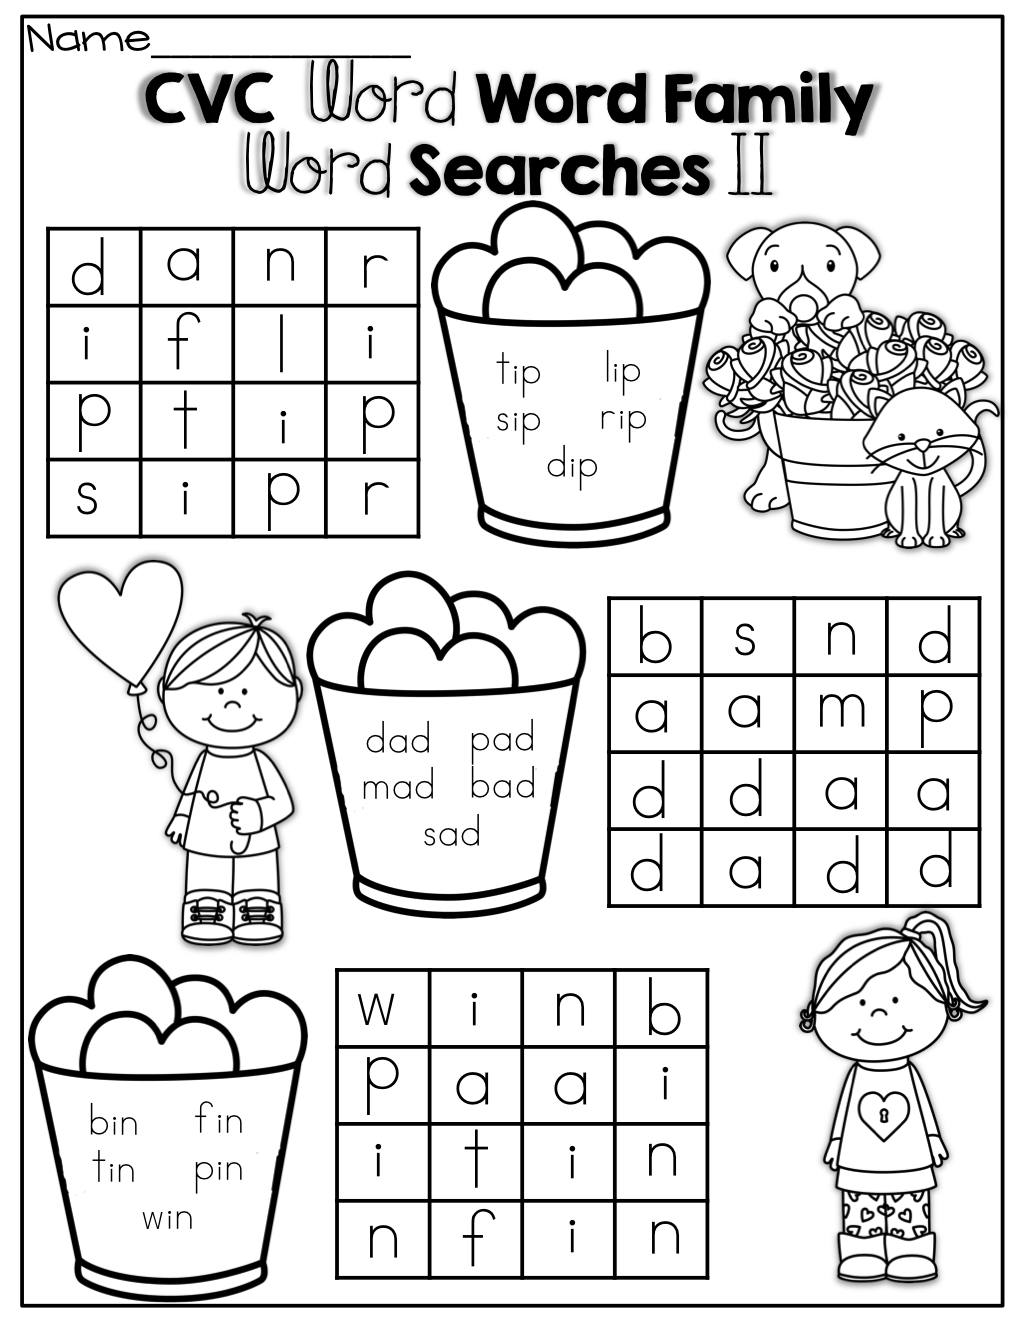 Simple Cvc Word Family Word Search